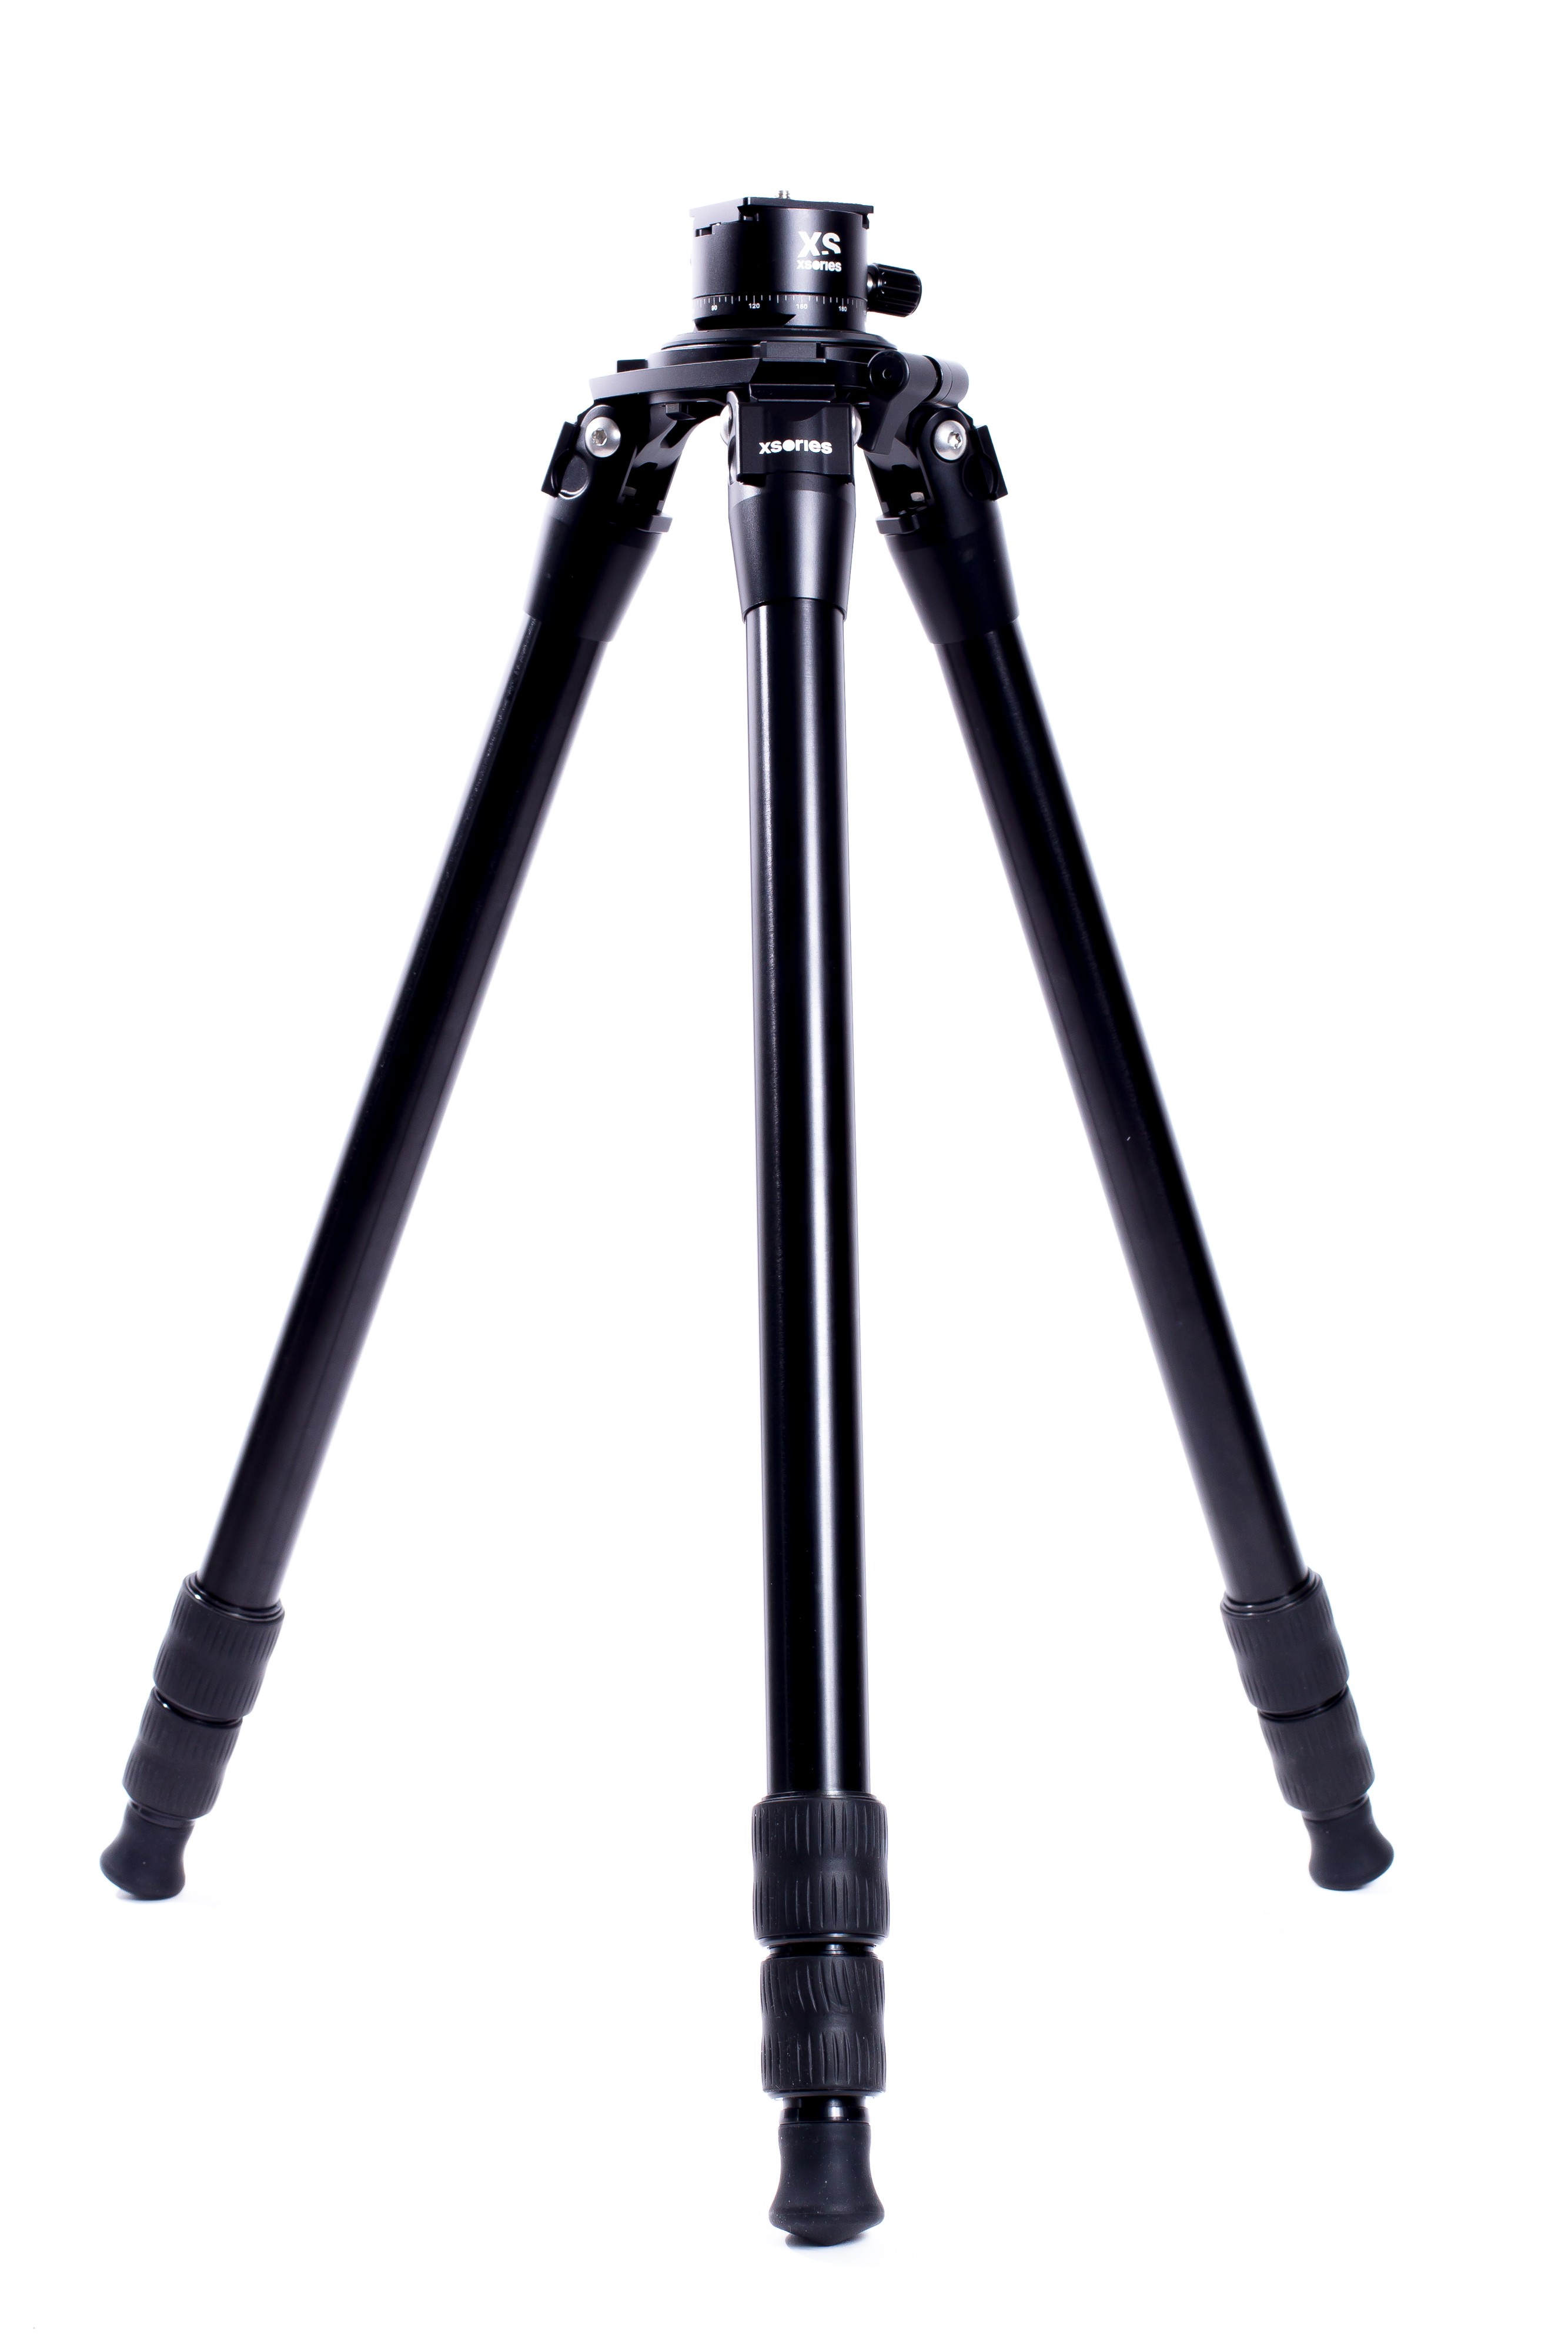 The Big Boss Tripod